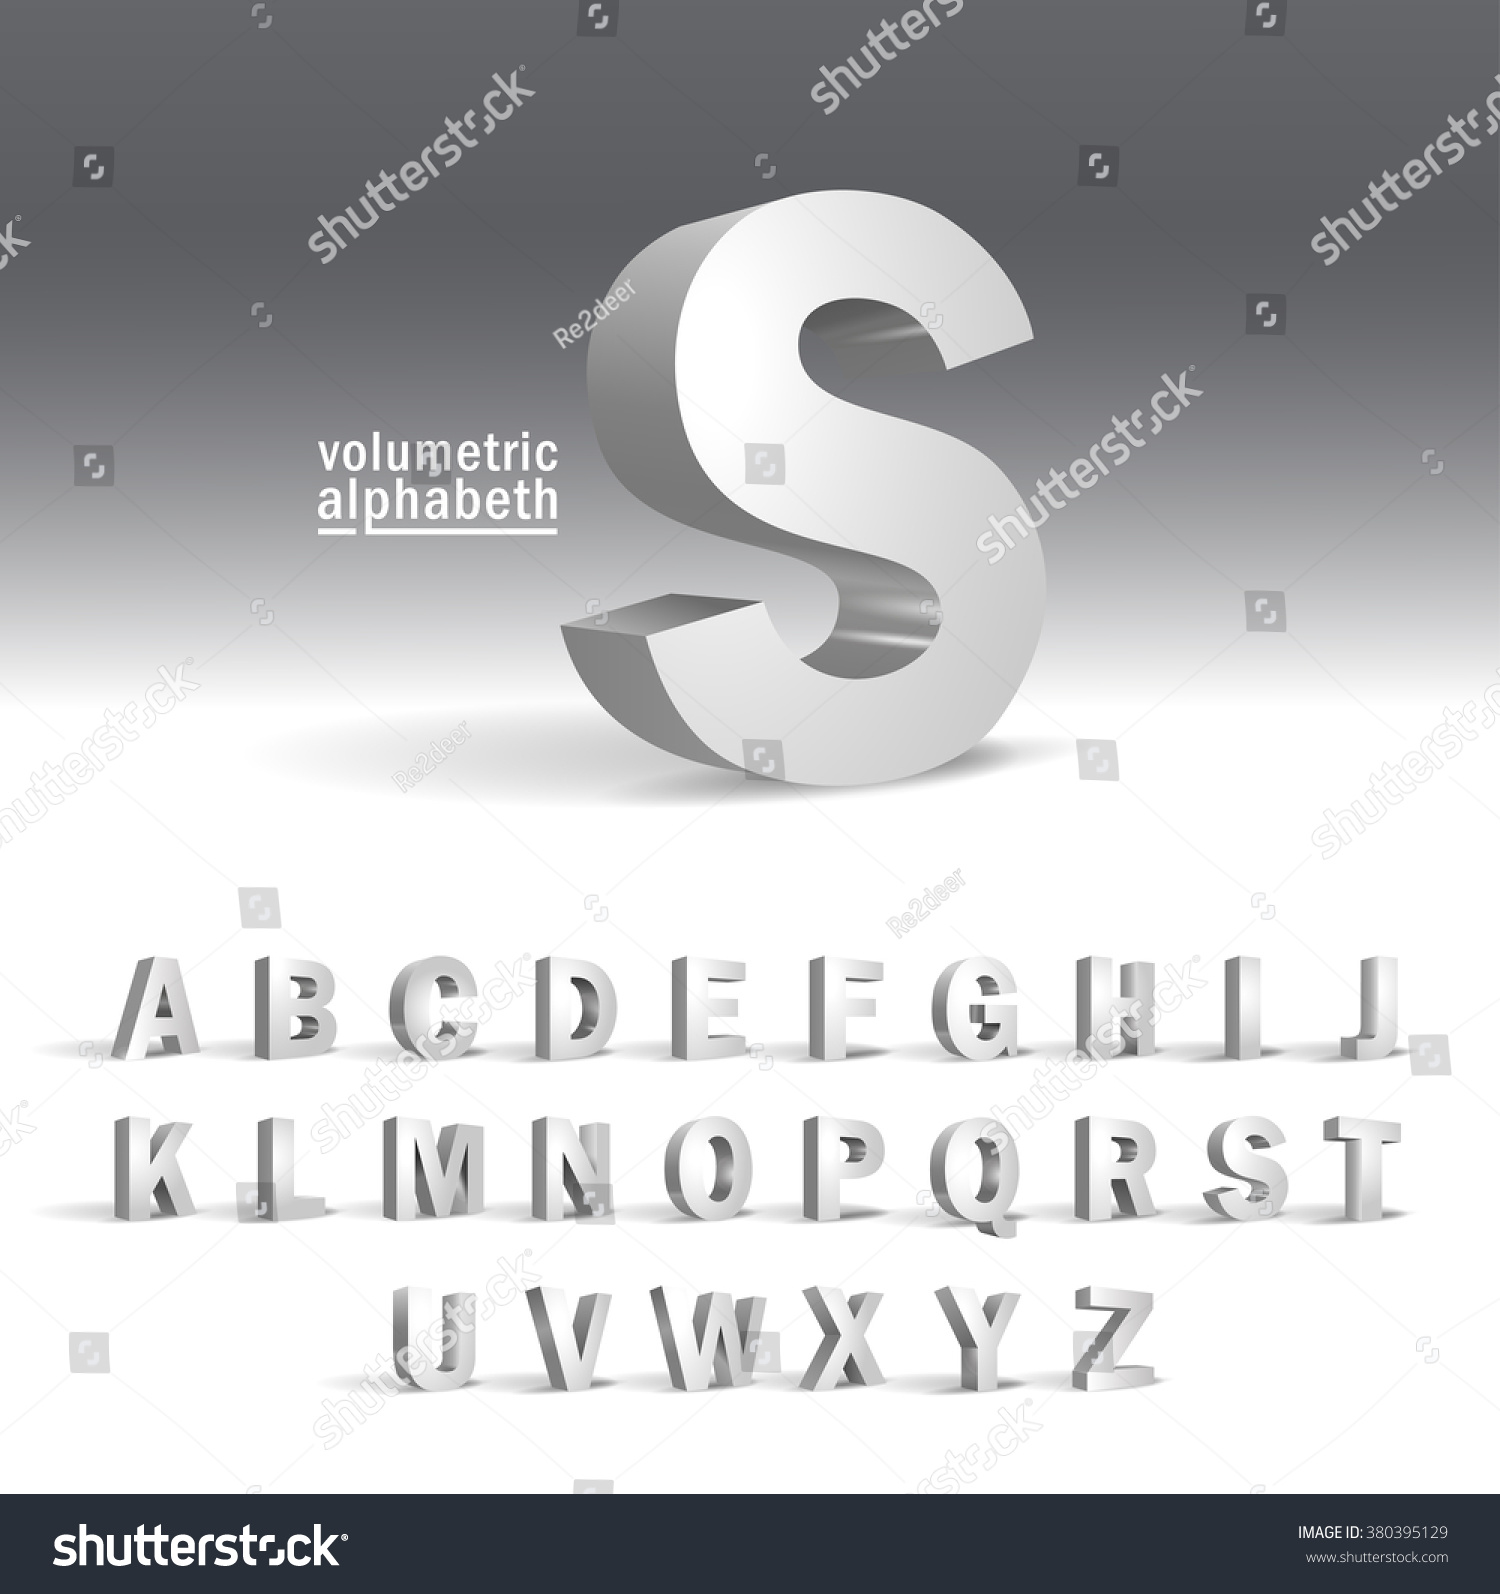 3D Alphabet template.Volumetric alphabet design #380395129